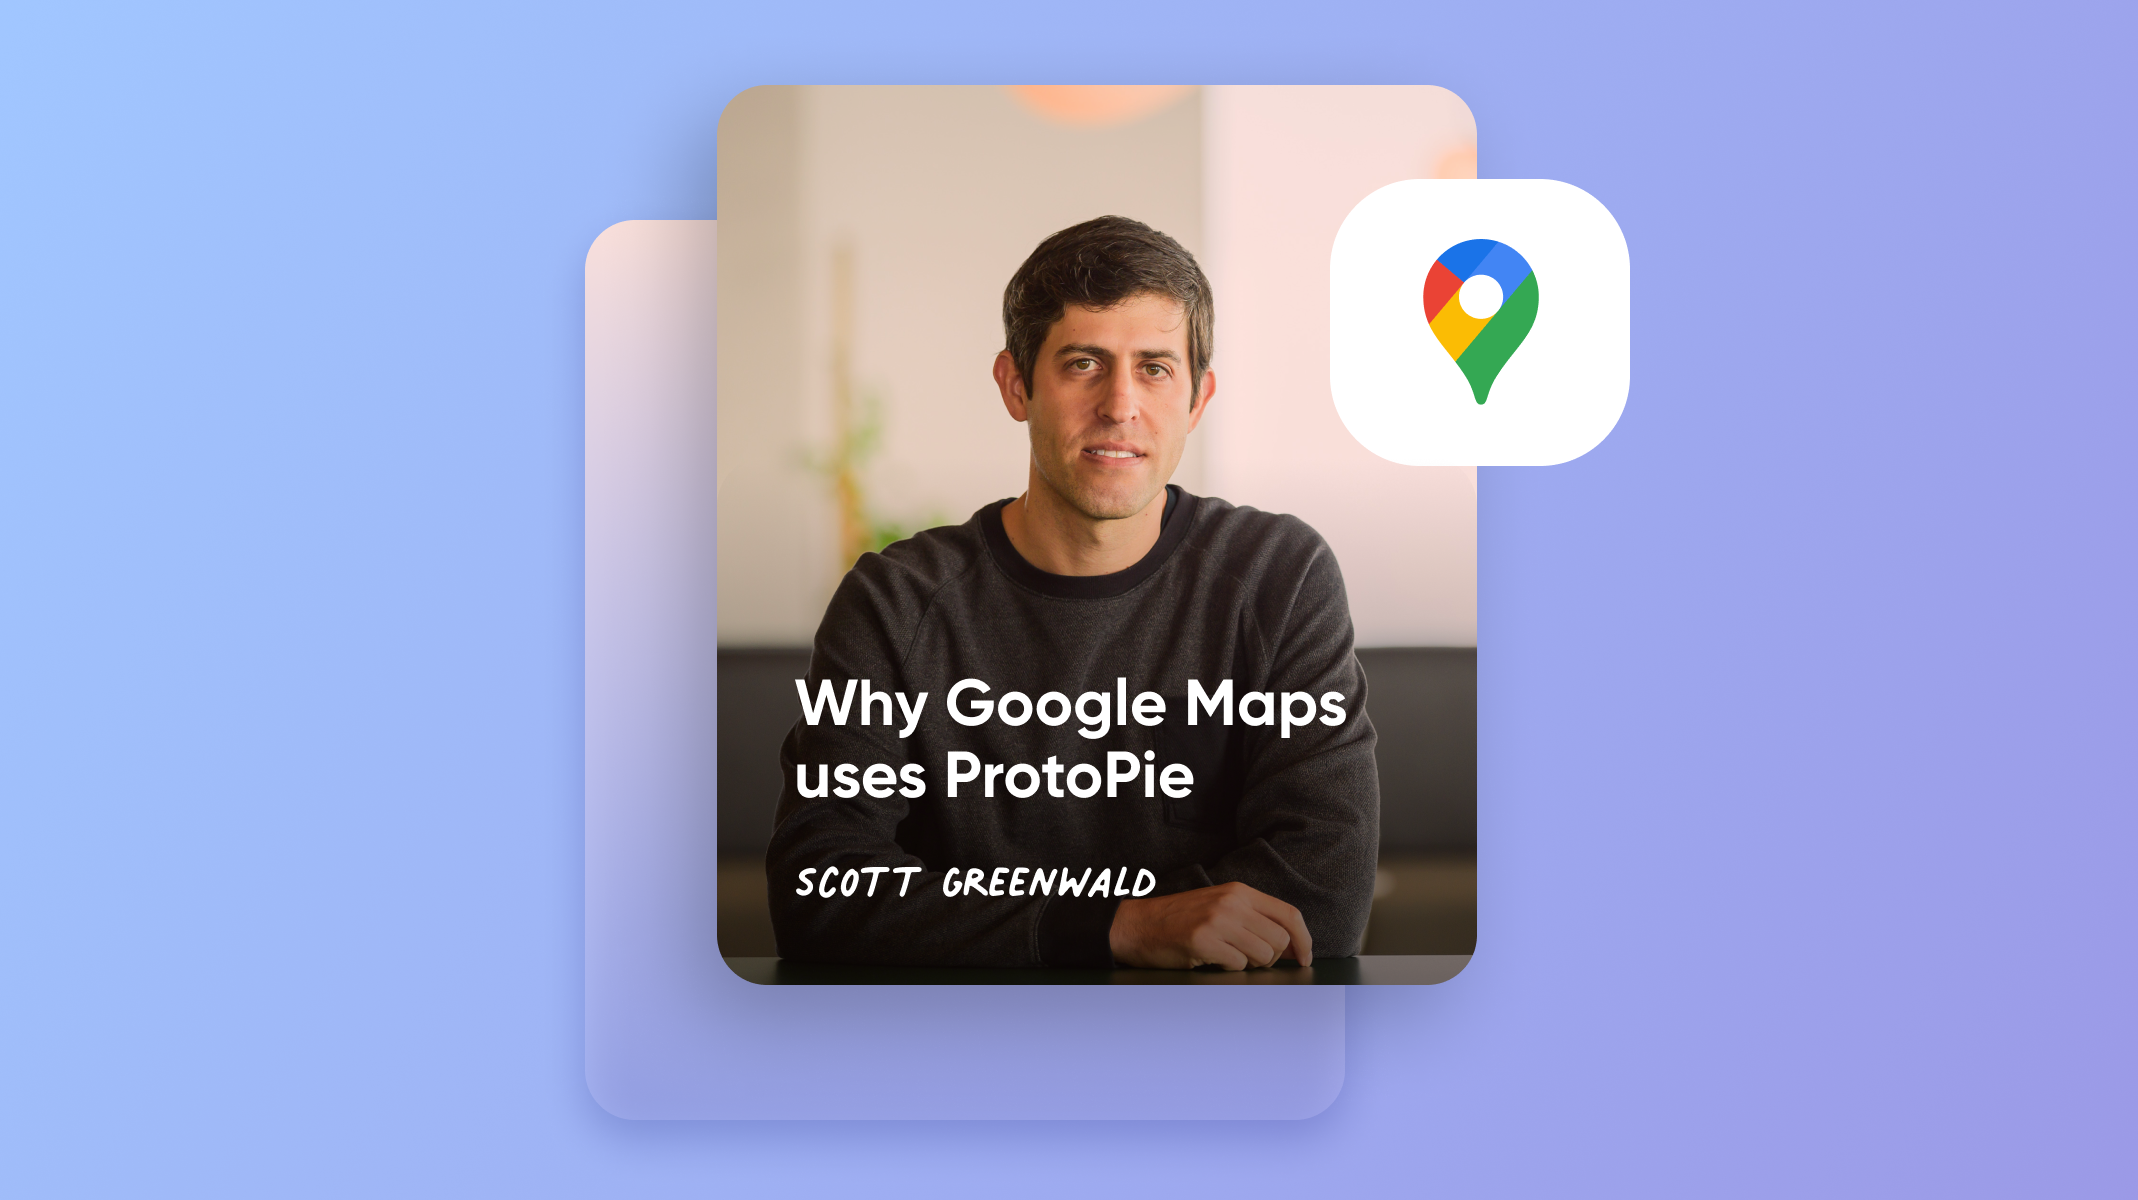 Why does the google maps team use ProtoPie for testing thumbnail